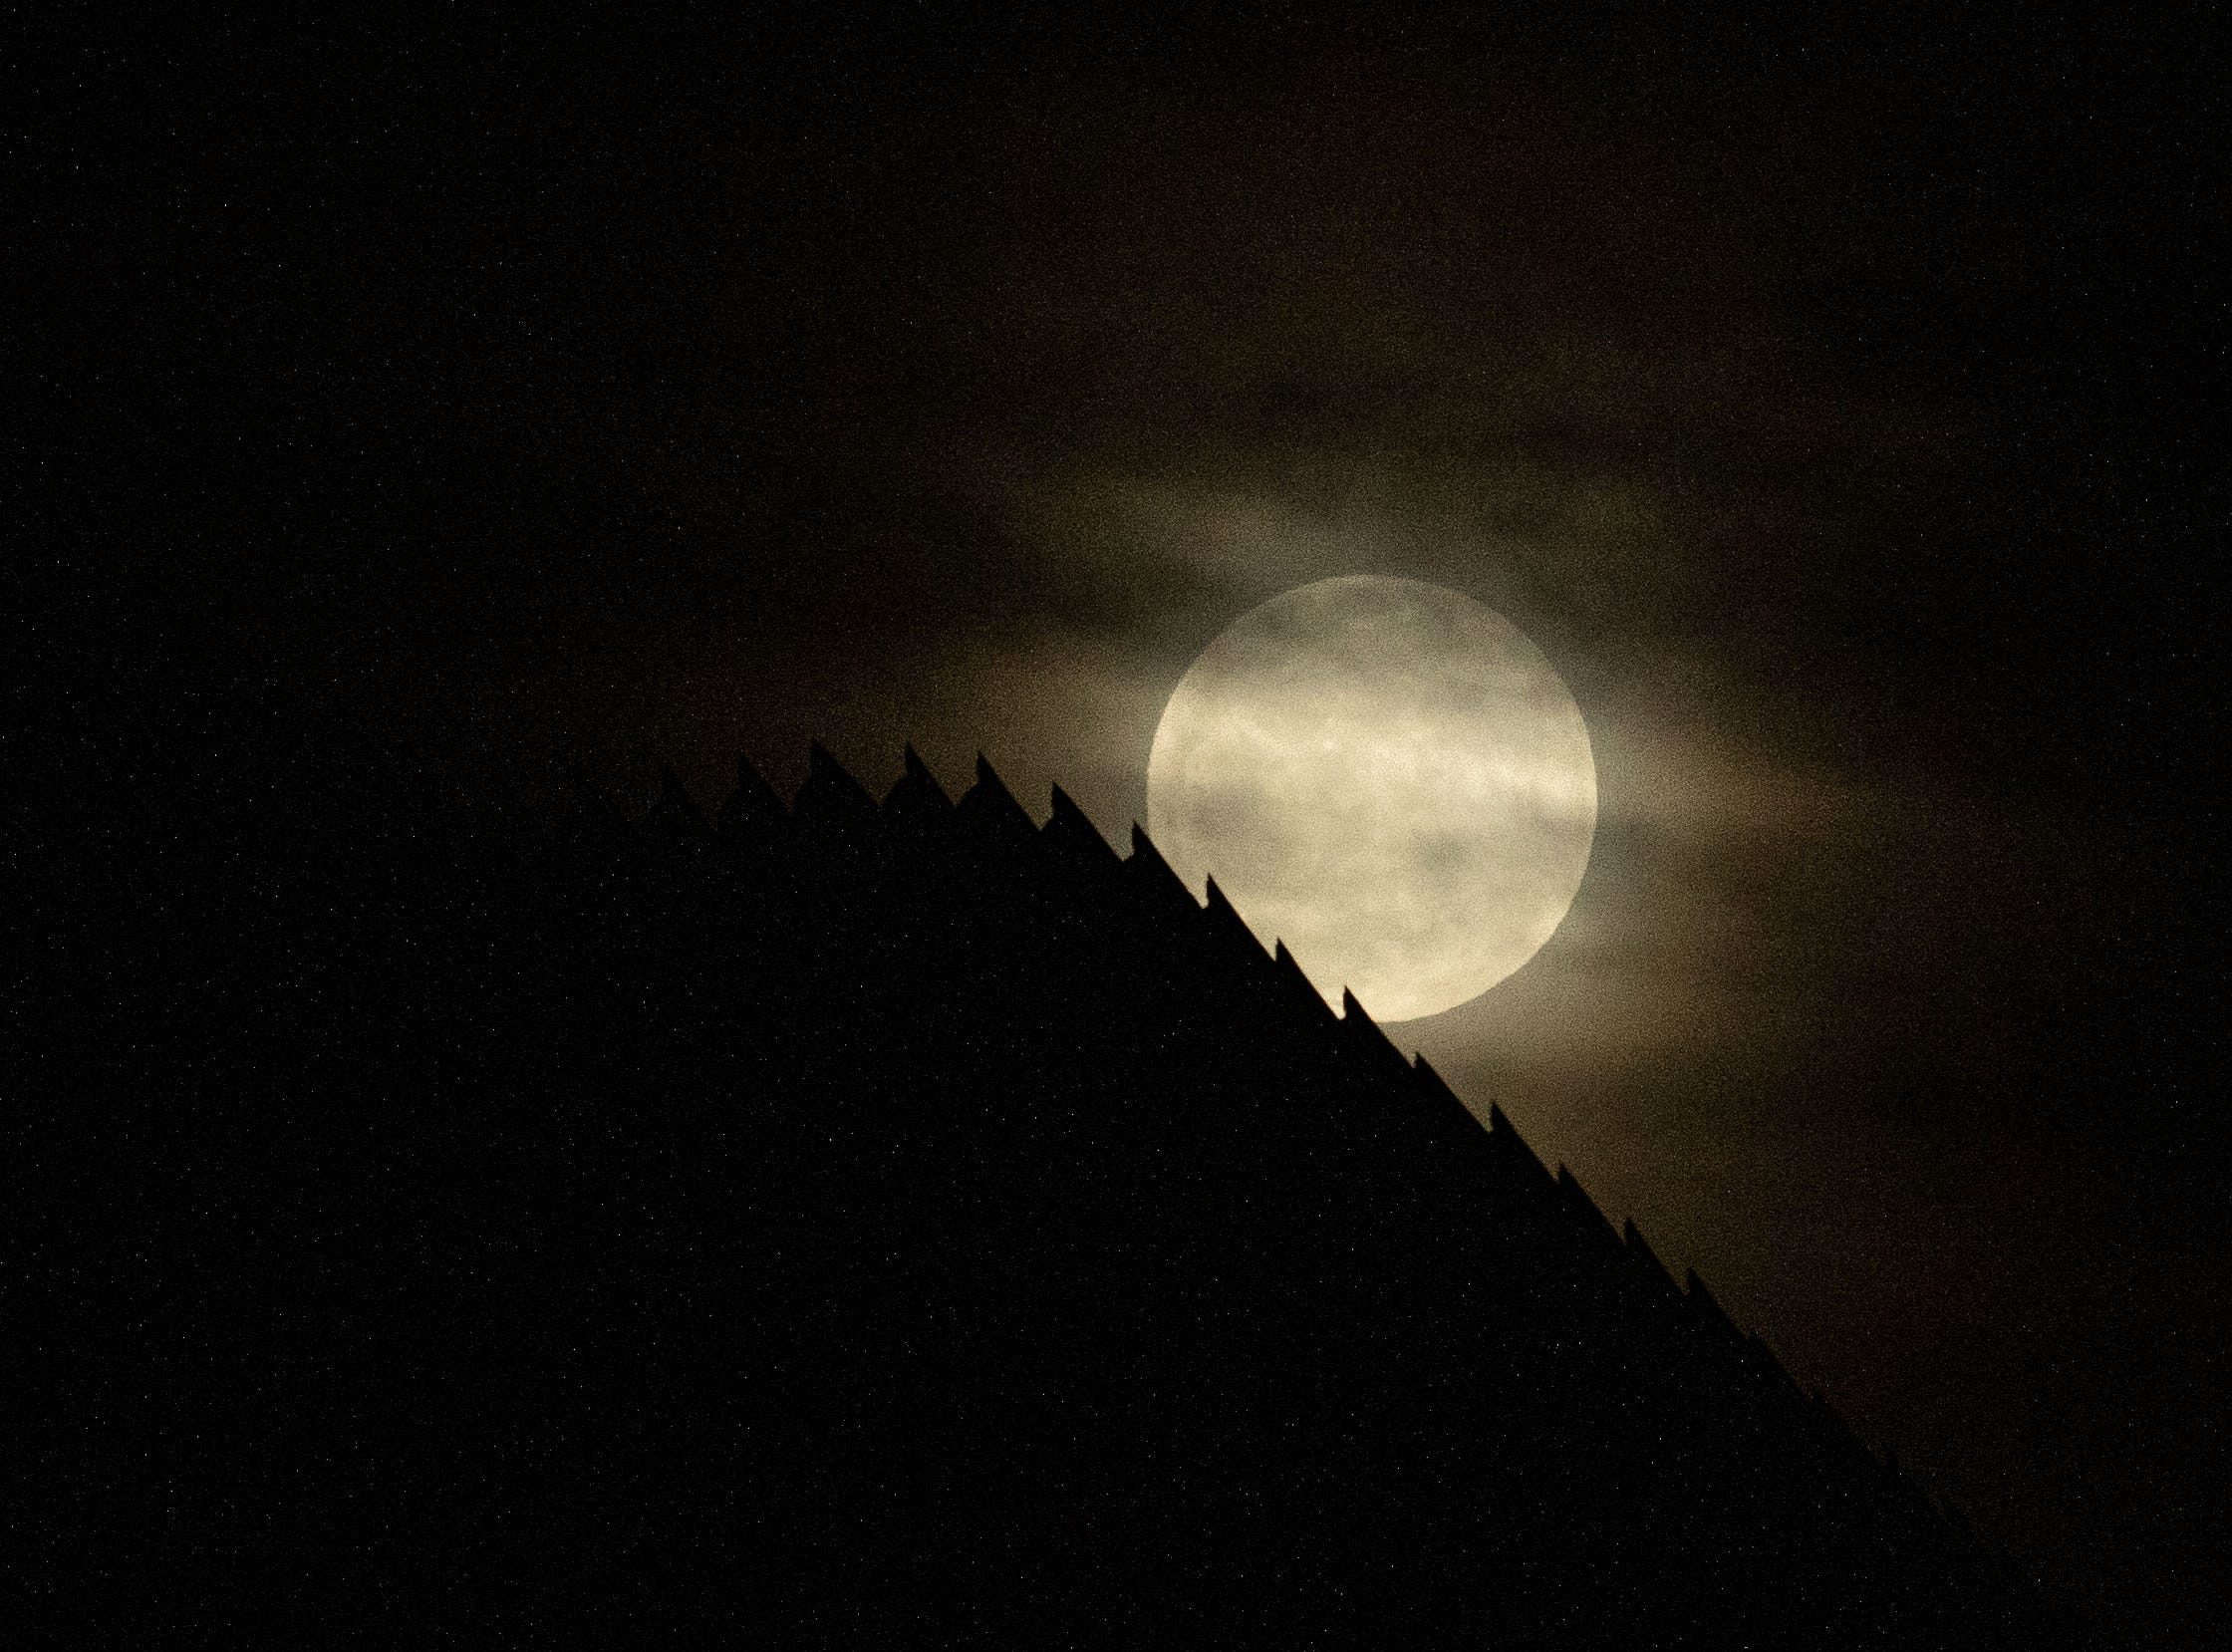 The US-Mexico border fence is silhouetted by the moon light in Tijuana, in Baja California state, Mexico, on January 20, 2019. (Photo by Guillermo Arias / AFP)        (Photo credit should read GUILLERMO ARIAS/AFP/Getty Images)